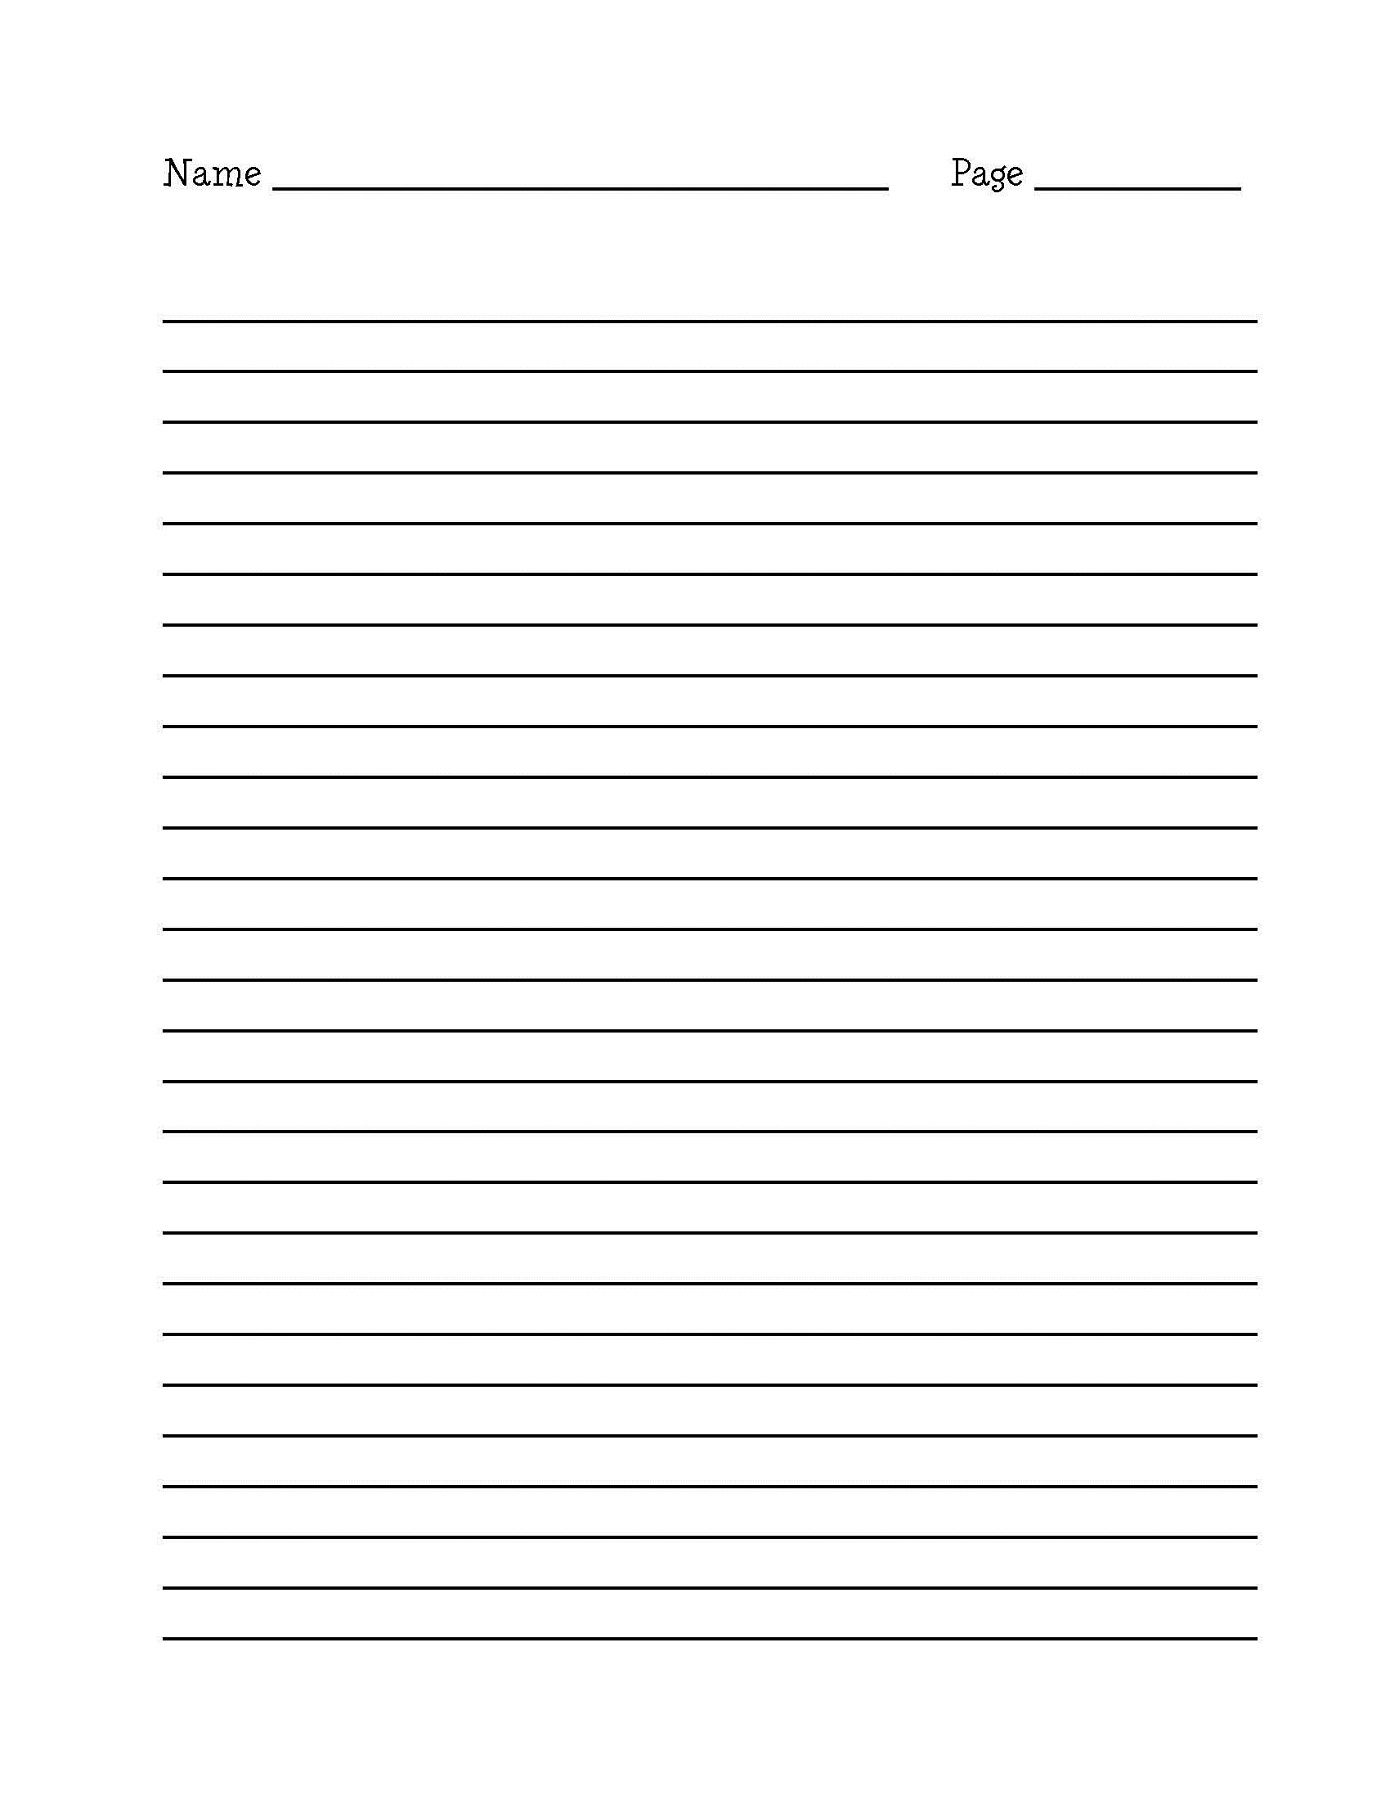 how to make lined paper in word